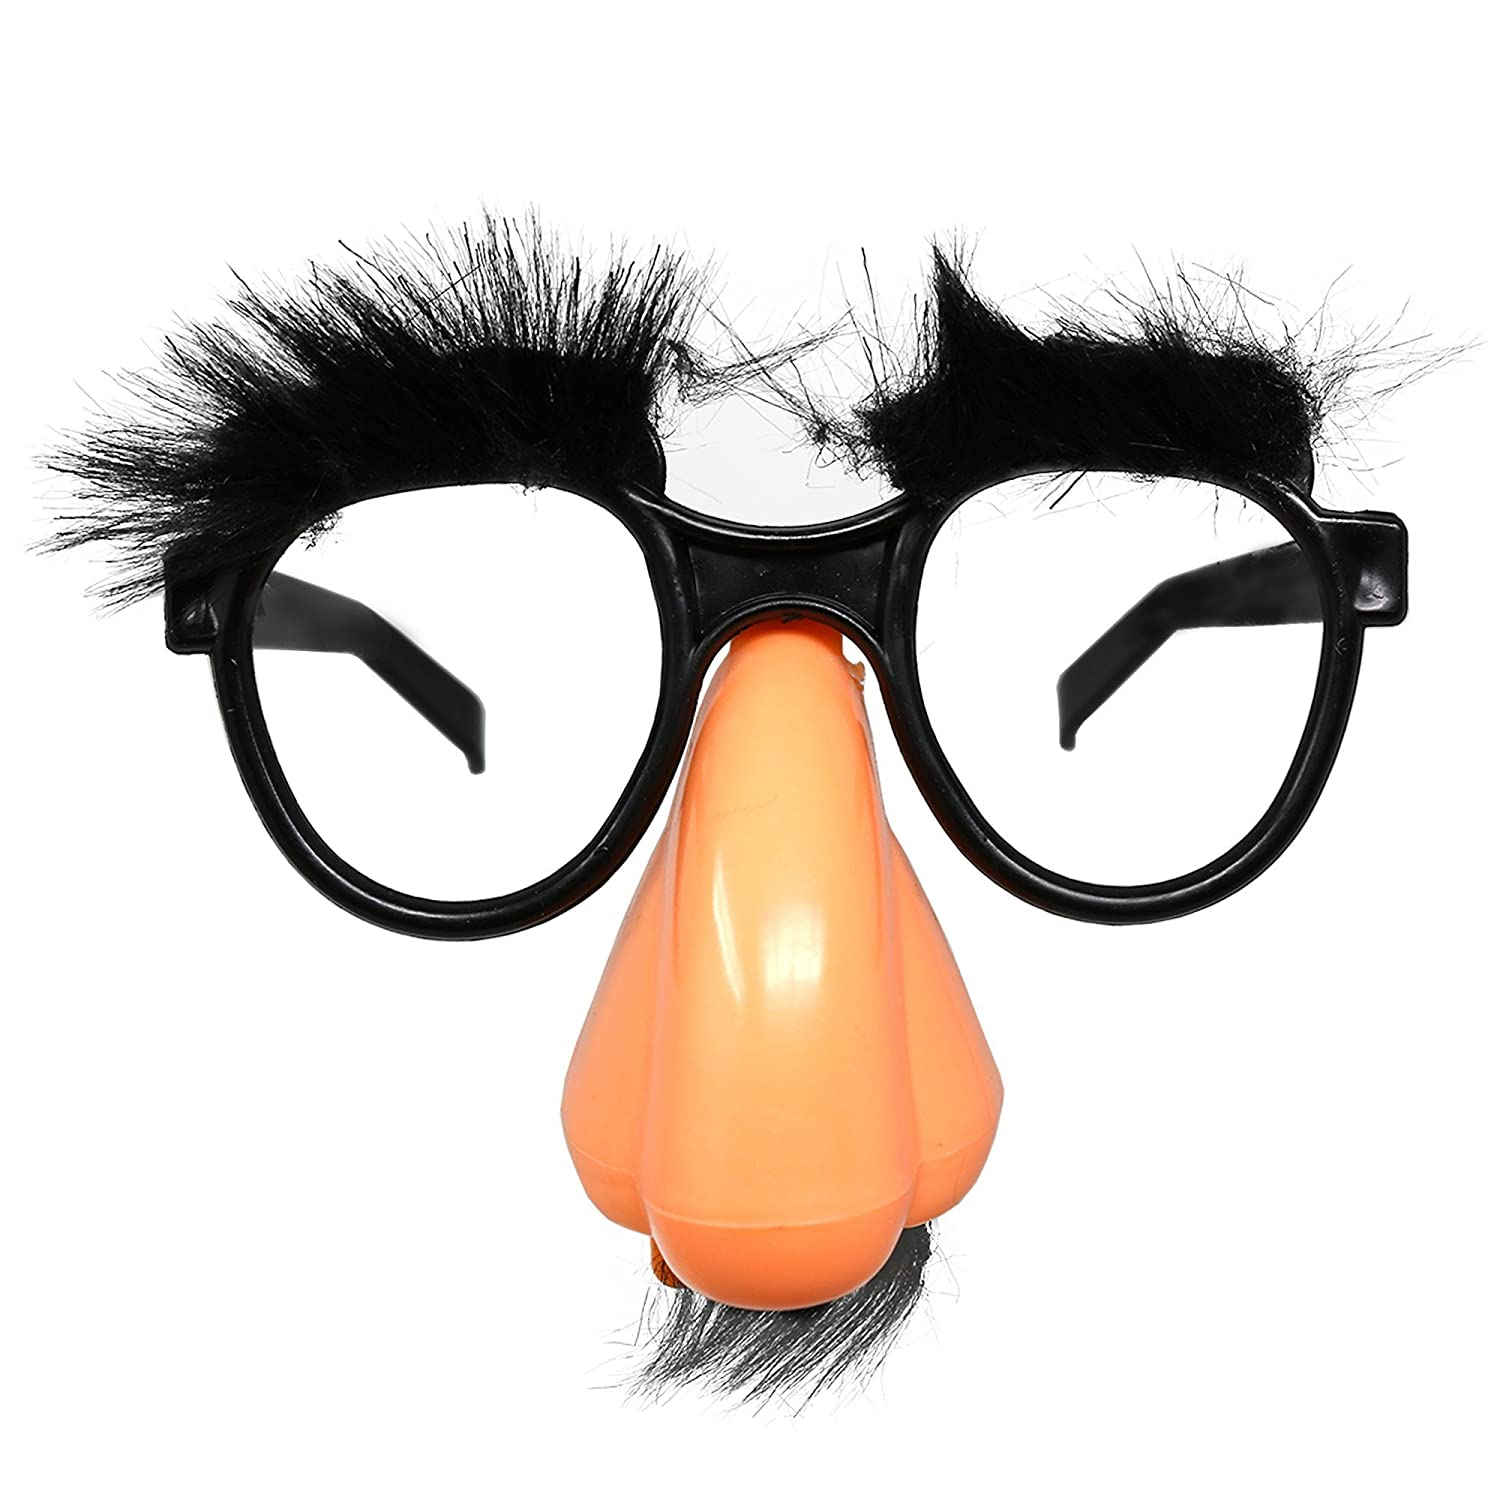 e236fbe6d6c Amazon.com  Skeleteen Disguise Glasses with Nose - Groucho Marx Funny Old  Man Glasses - 1 Piece  Clothing